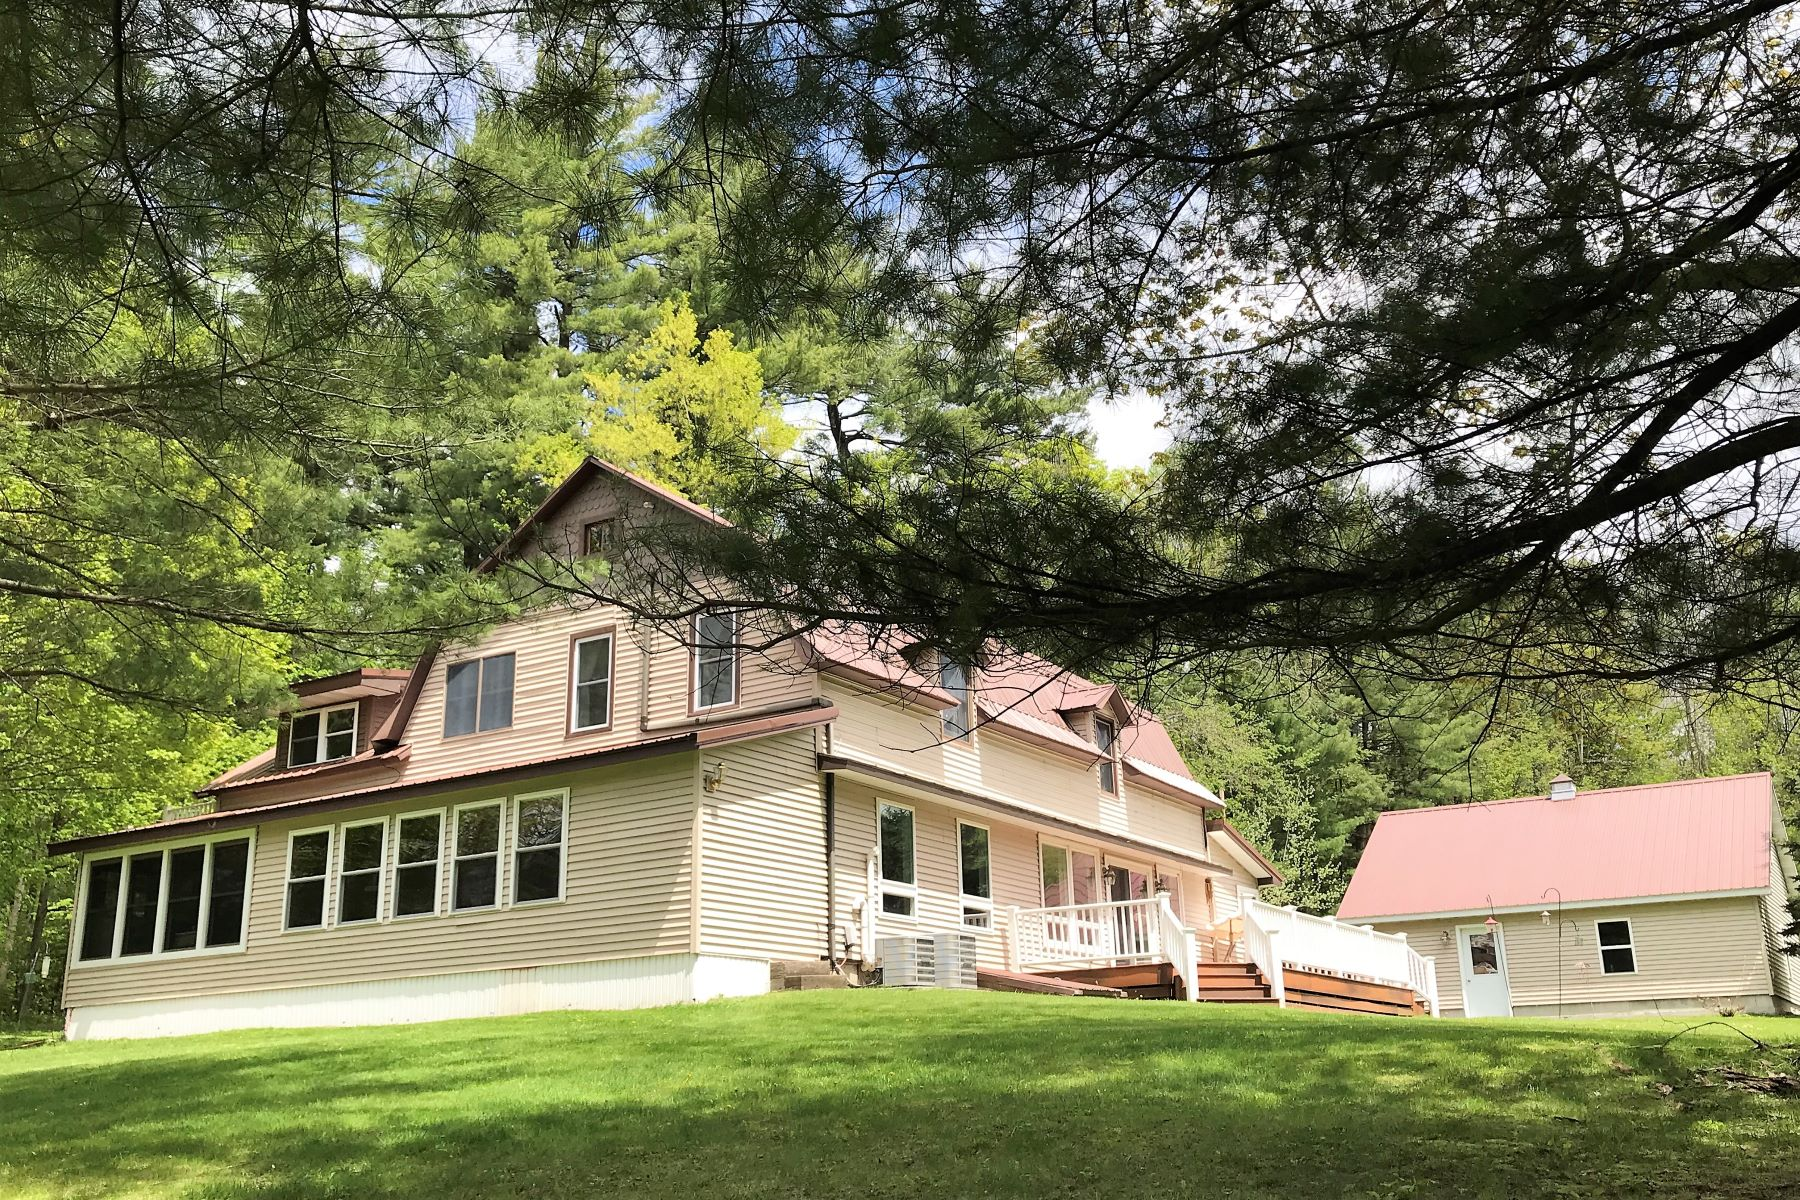 Single Family Homes for Sale at 7118 Nortonville Rd, Lyonsdale, NY, 13343 7118 Nortonville Rd Lyonsdale, New York 13343 United States